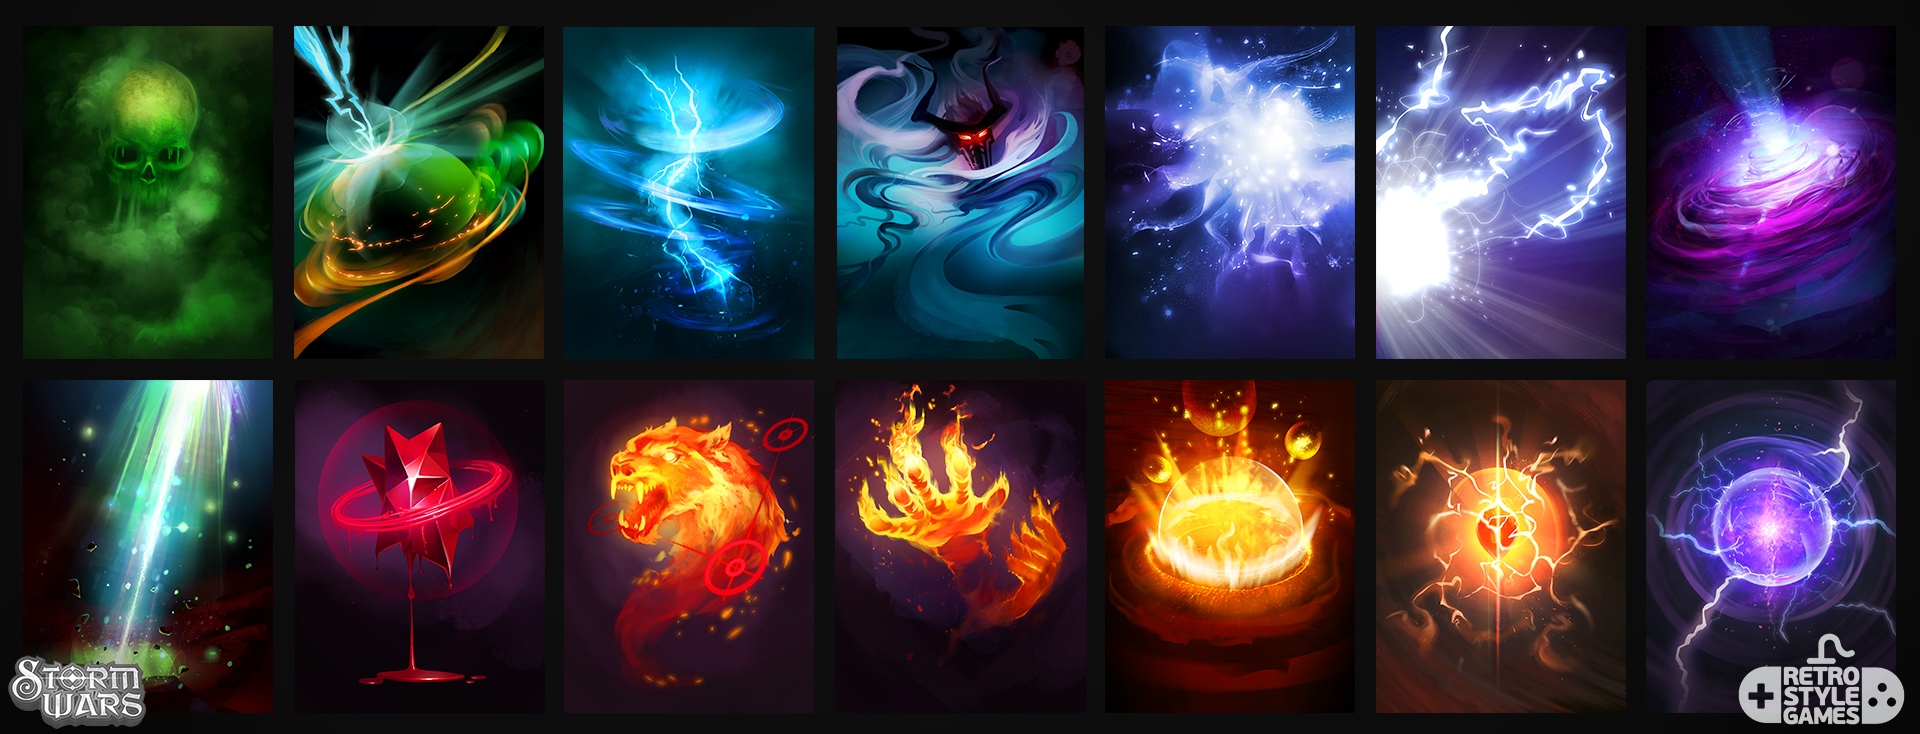 stormwars 2d collectible cards spells magic fx fire